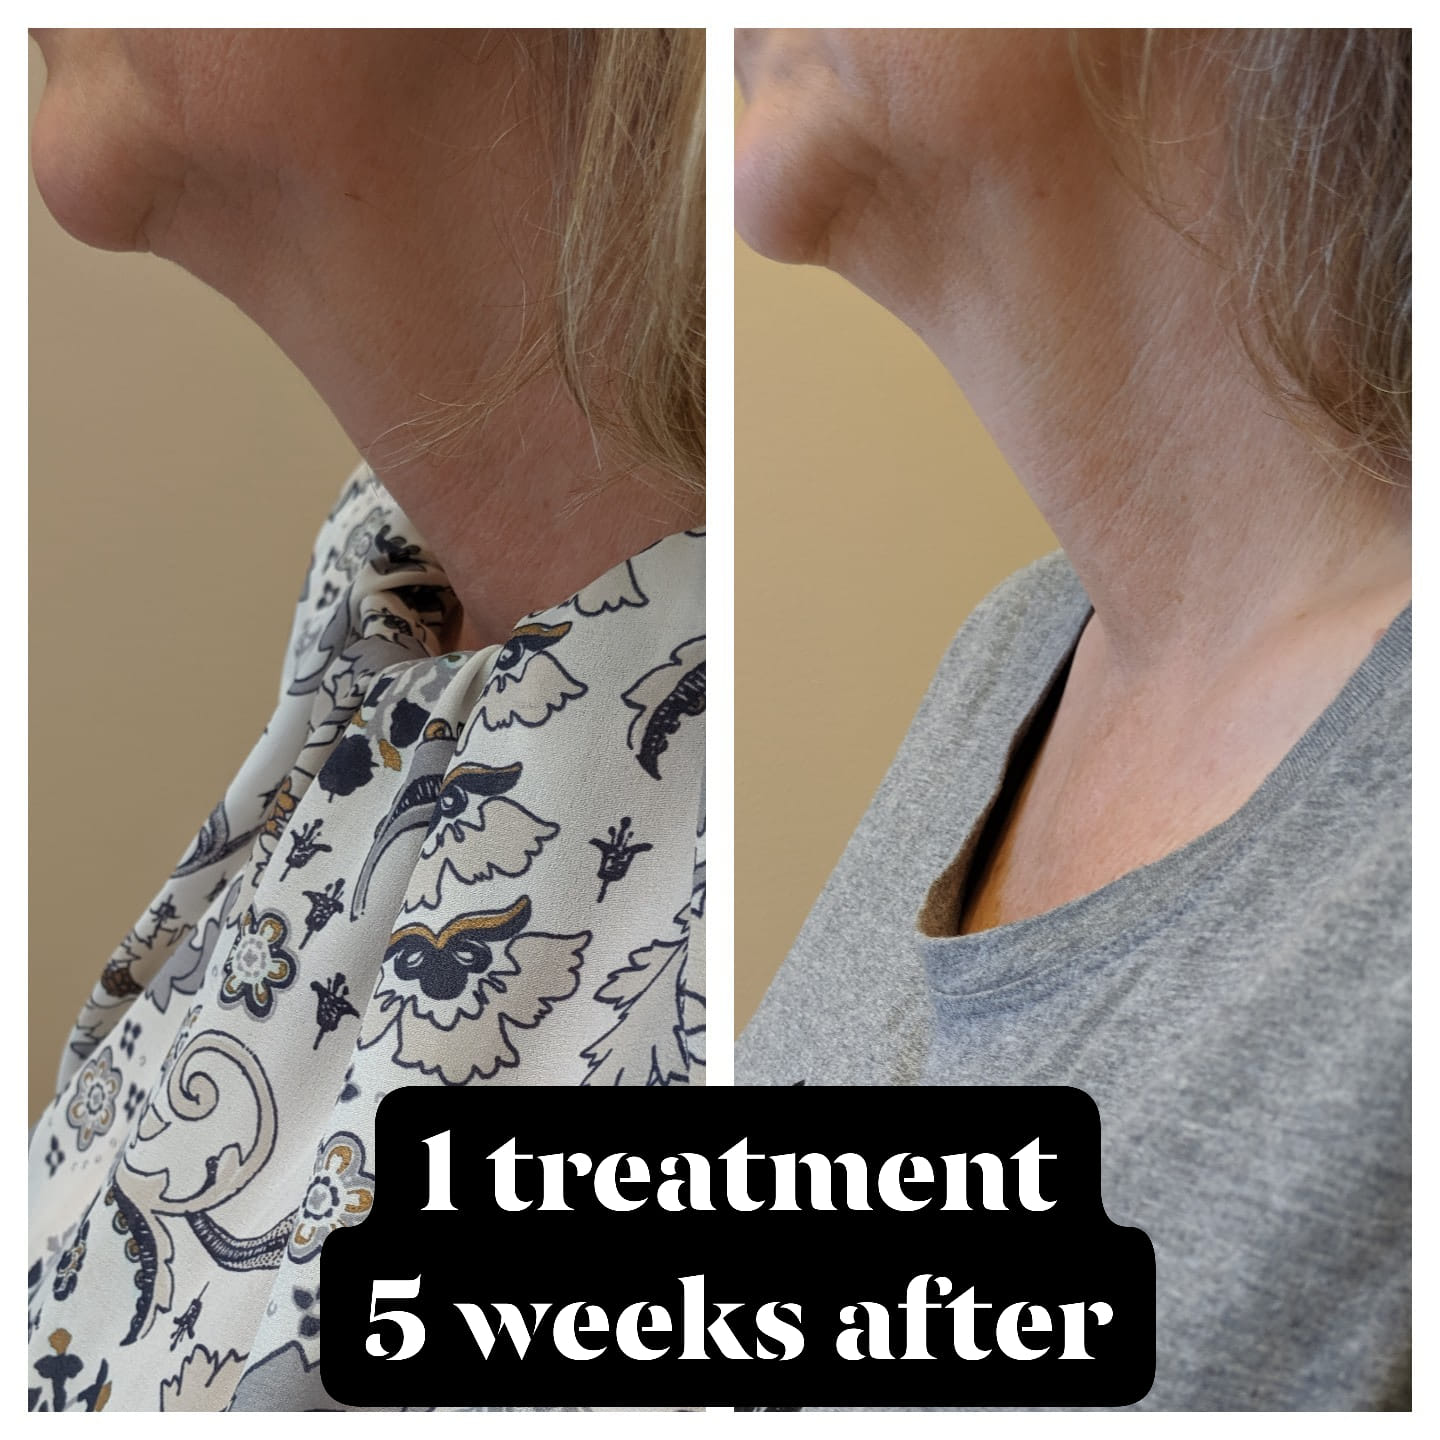 Submental, under the chin, before and after a truSculpt 3D body sculpting treatment